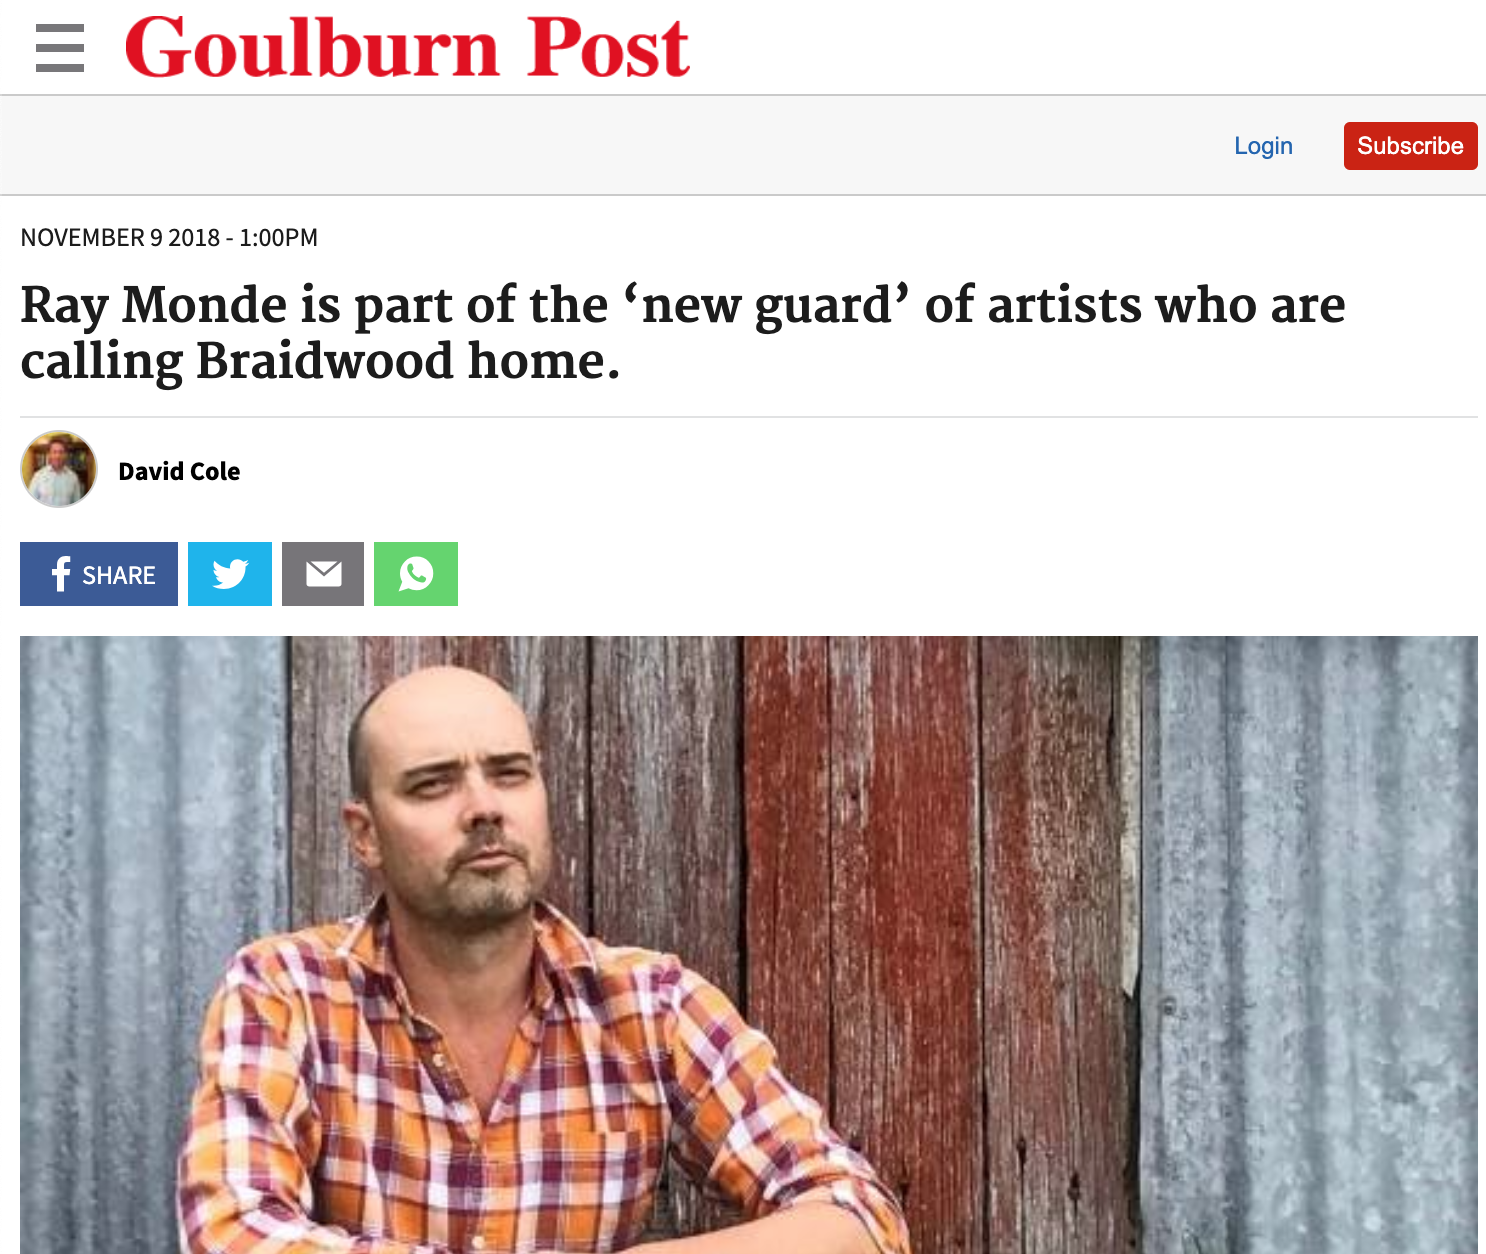 Ray Monde new guard of artists